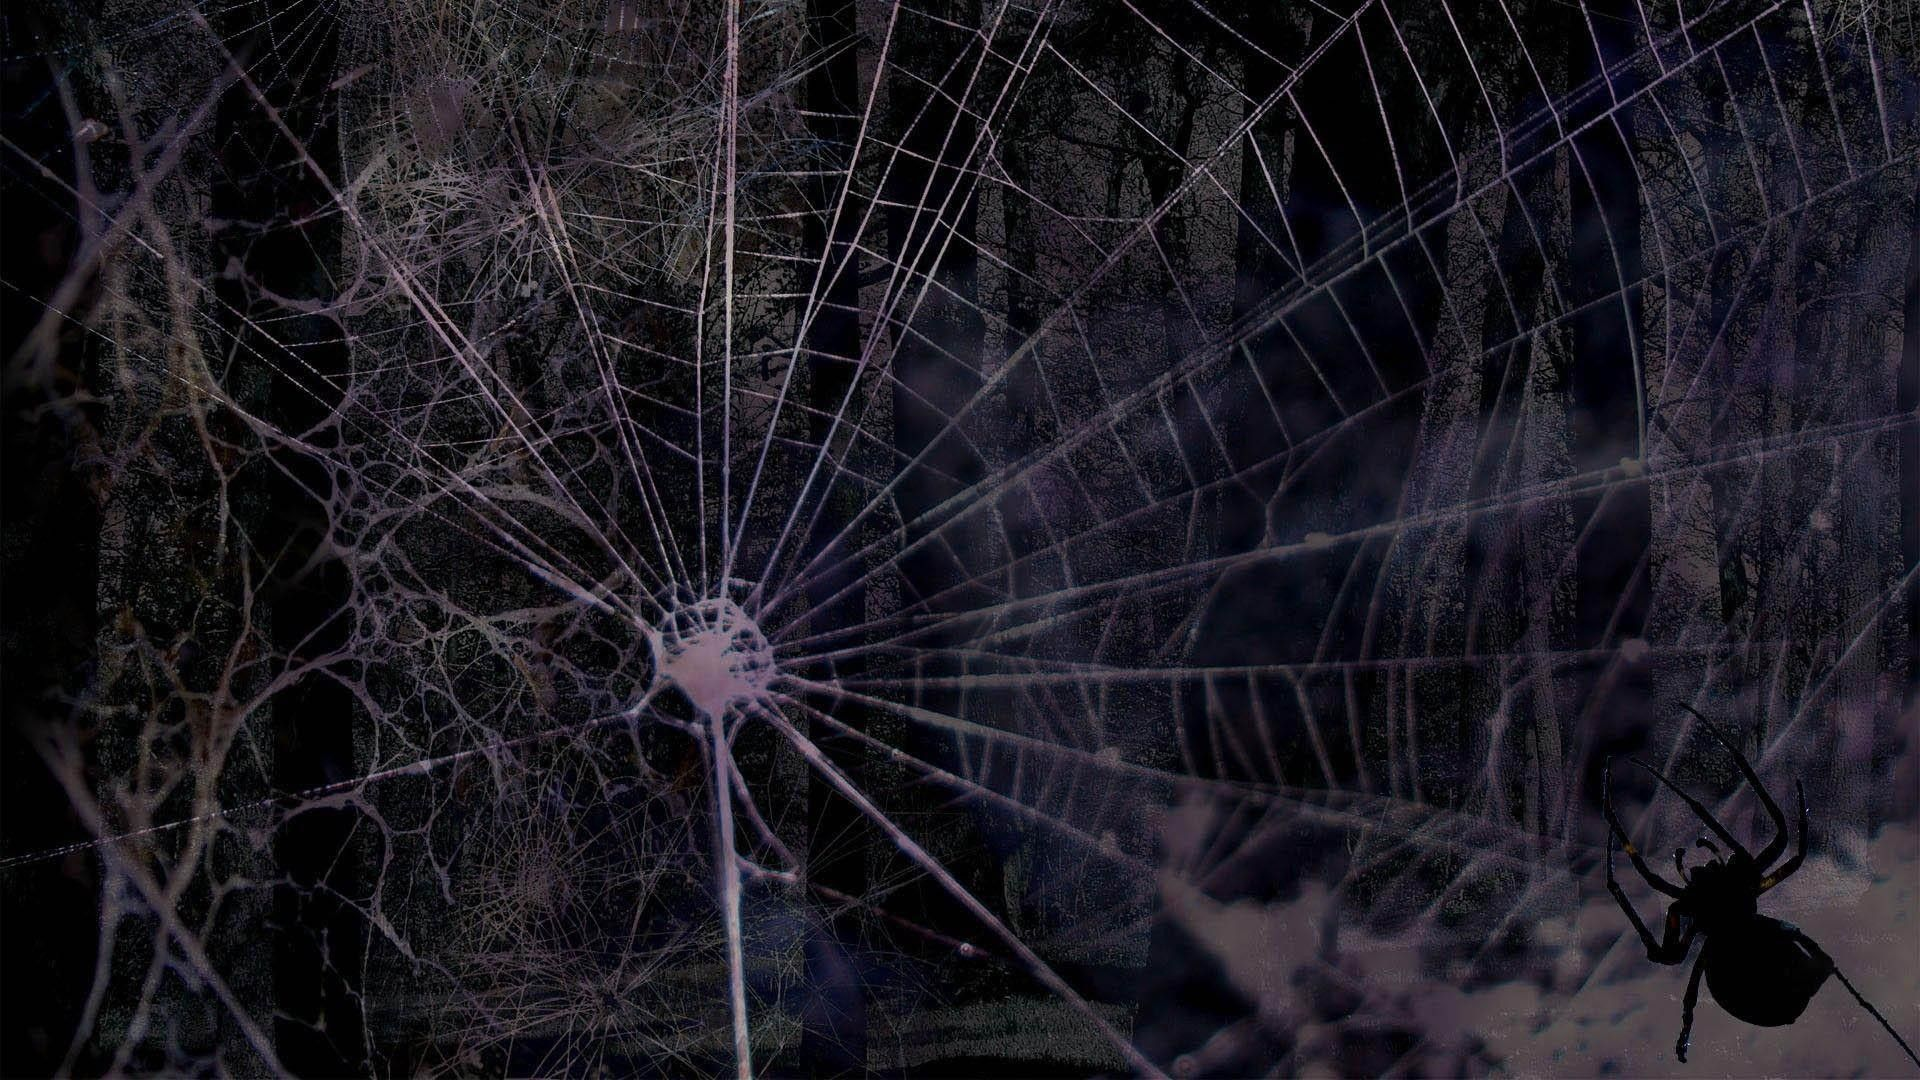 Spider Web Wallpapers 19 Top Free Spider Web Backgrounds For Tablet Amazing Hd Wallpapers Spiders Scary Spider Web